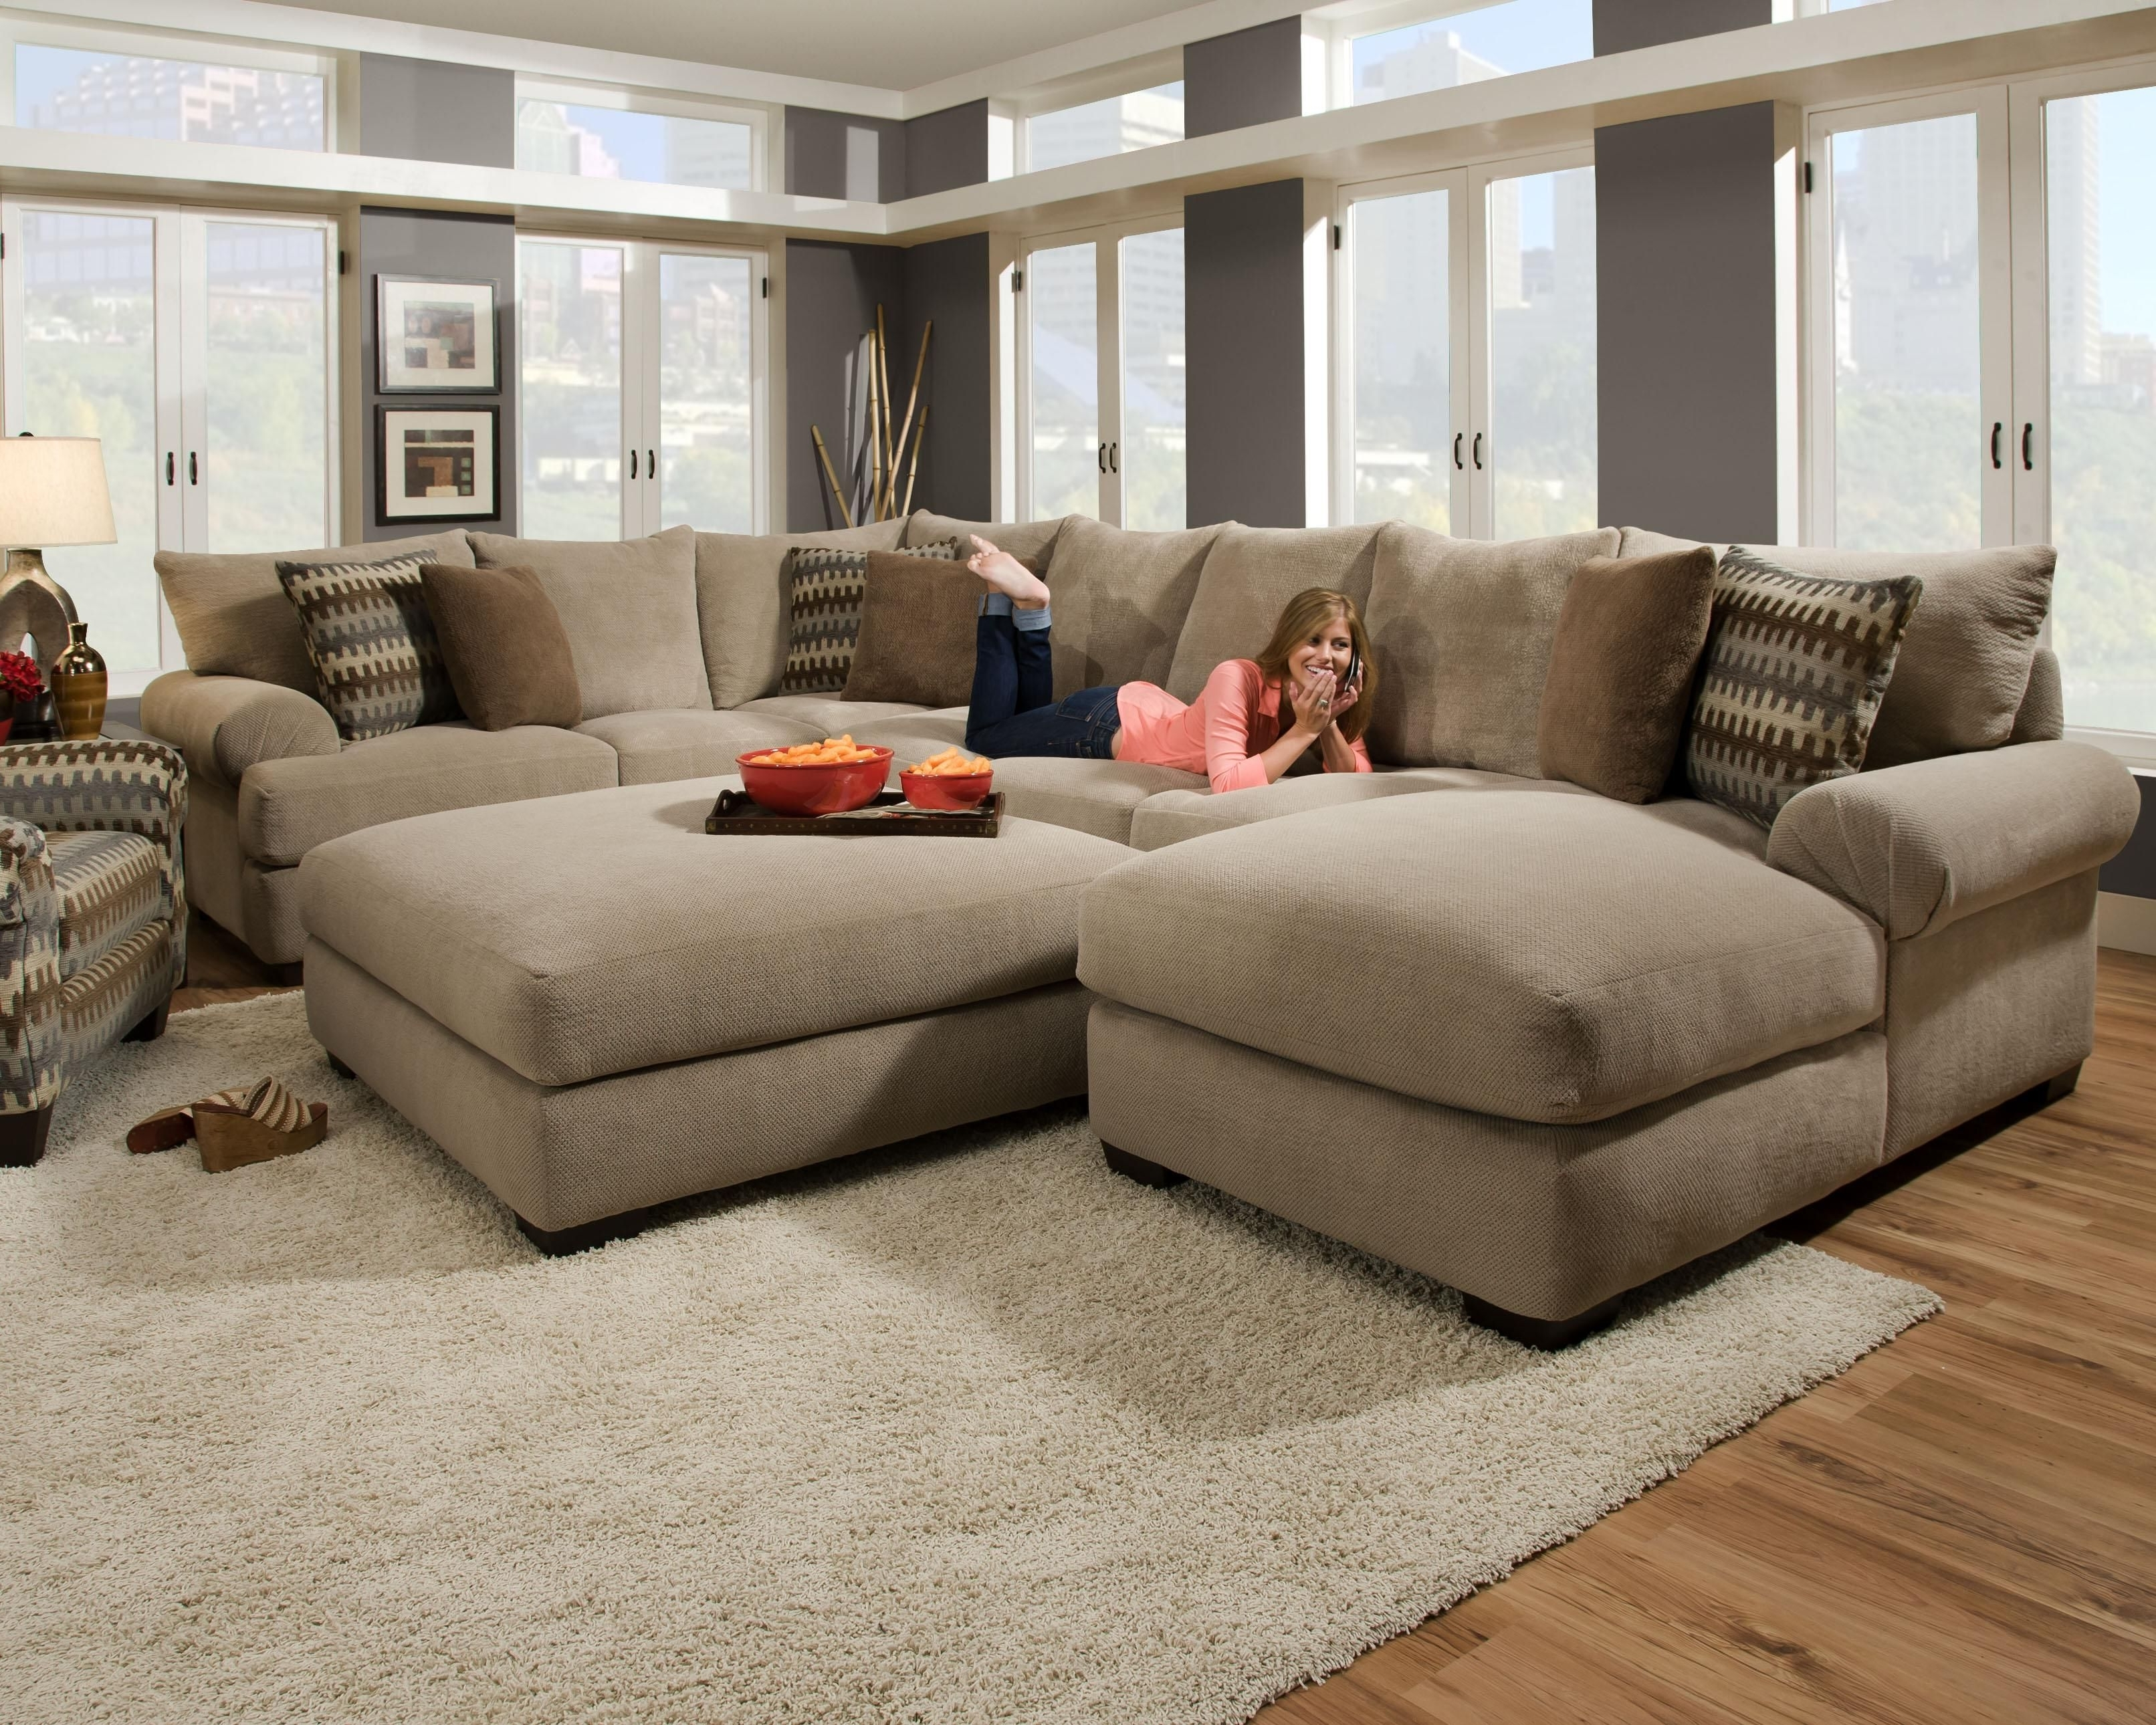 Nice Oversized Couch , Epic Oversized Couch 78 For Your With Regard To Best And Newest Oversized Sofa Chairs (View 6 of 15)